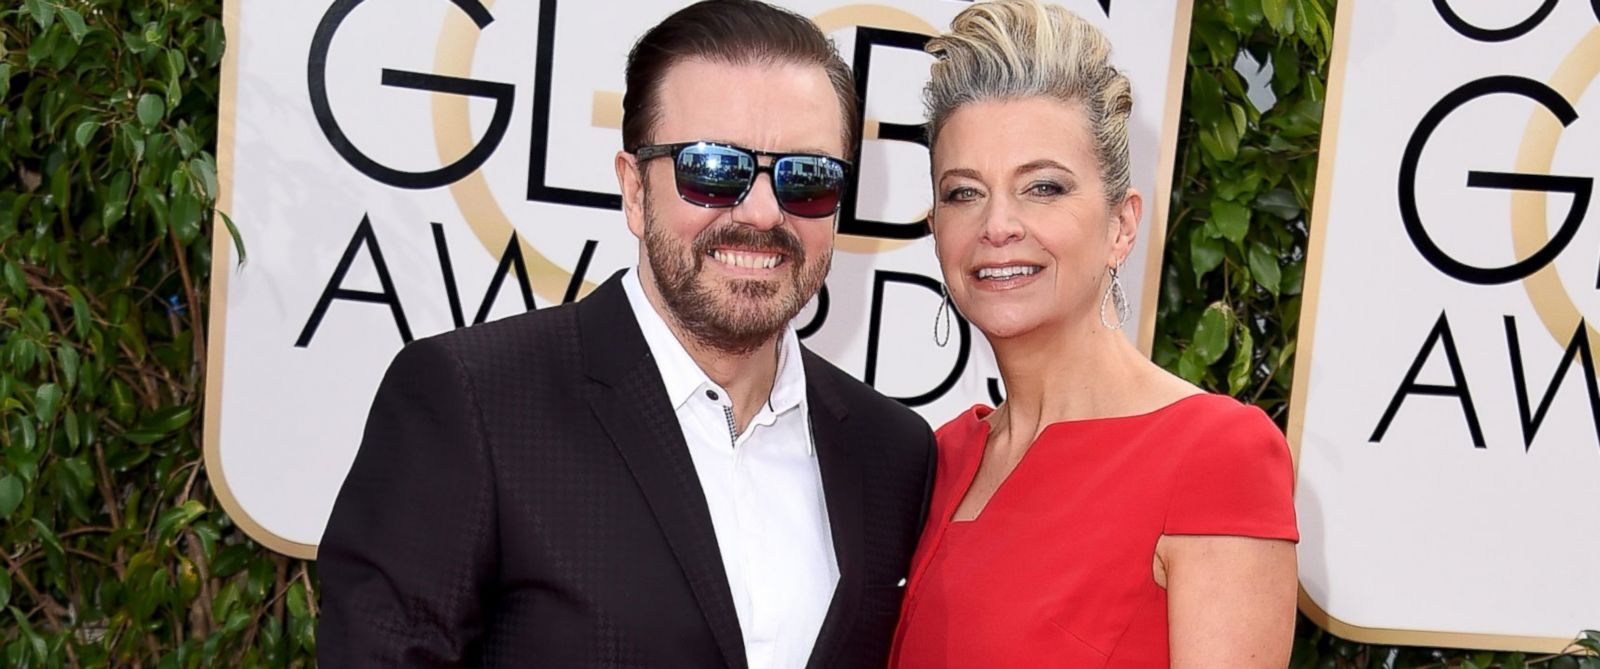 PHOTO: Ricky Gervais and Jane Fallon attend the 73rd Annual Golden Globe Awards held at the Beverly Hilton Hotel on Jan. 10, 2016, in Beverly Hills, California.